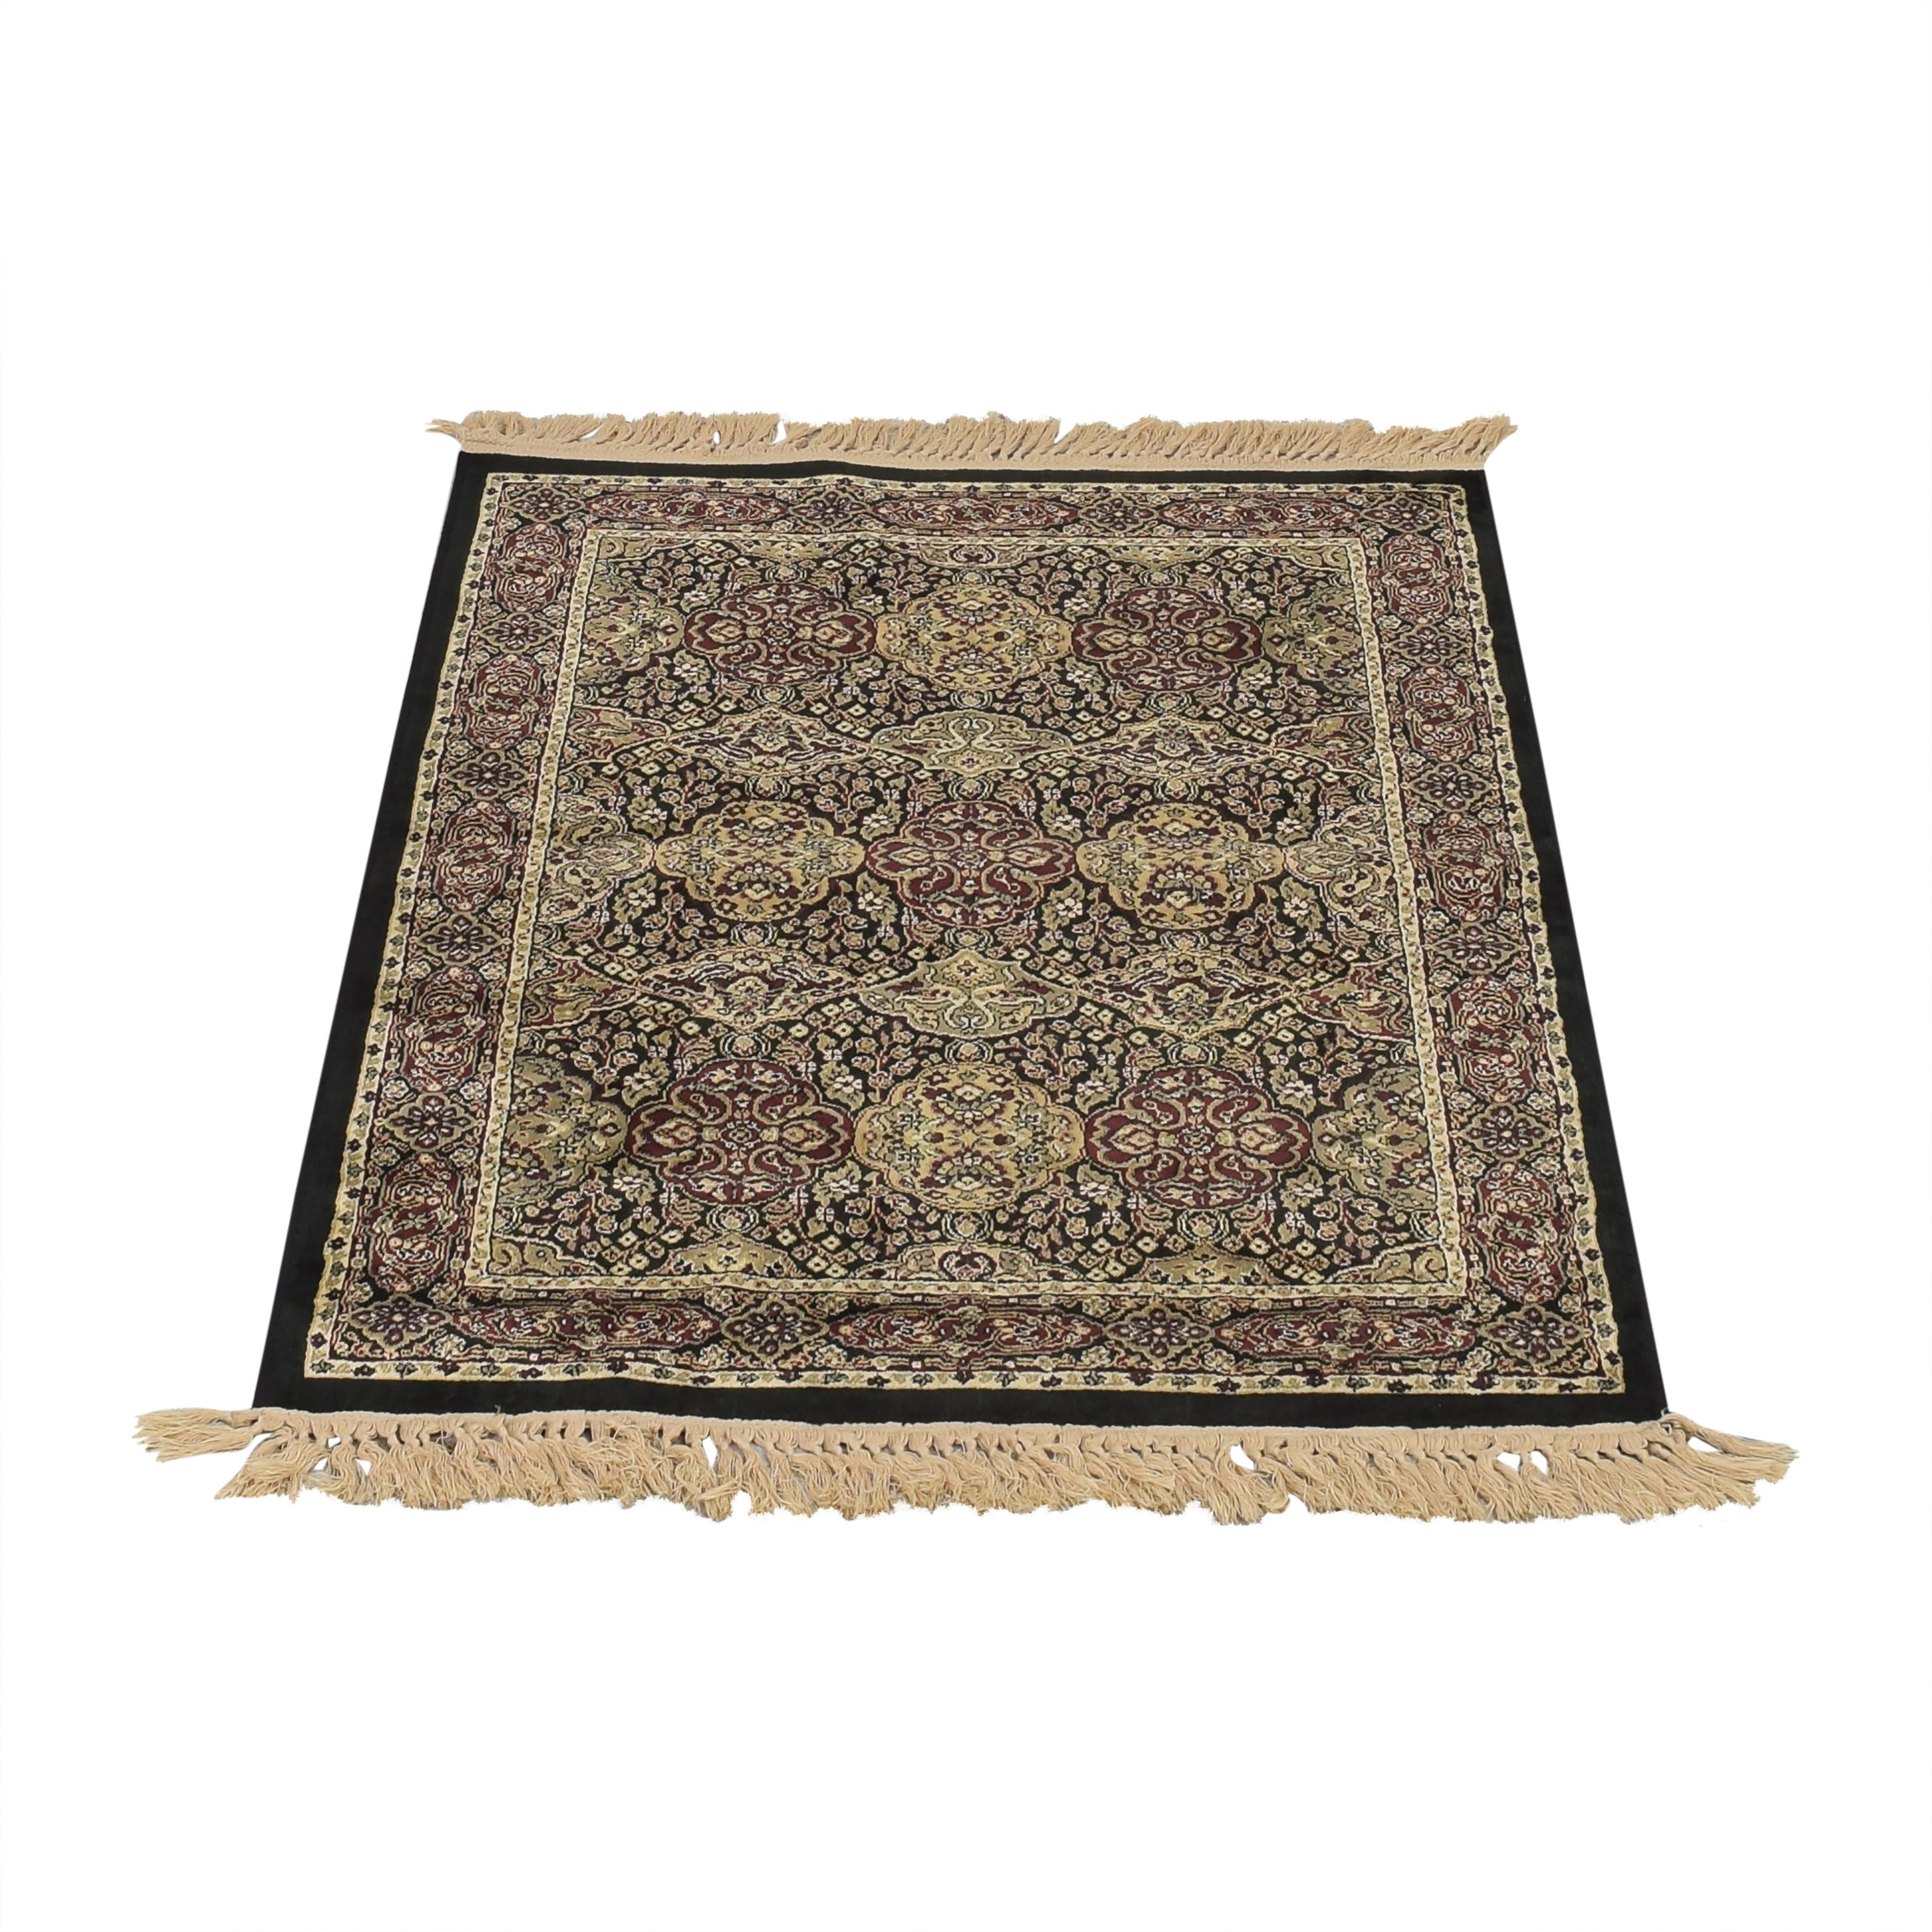 shop Bloomingdale's Persian Style Area Rug Bloomingdale's Decor